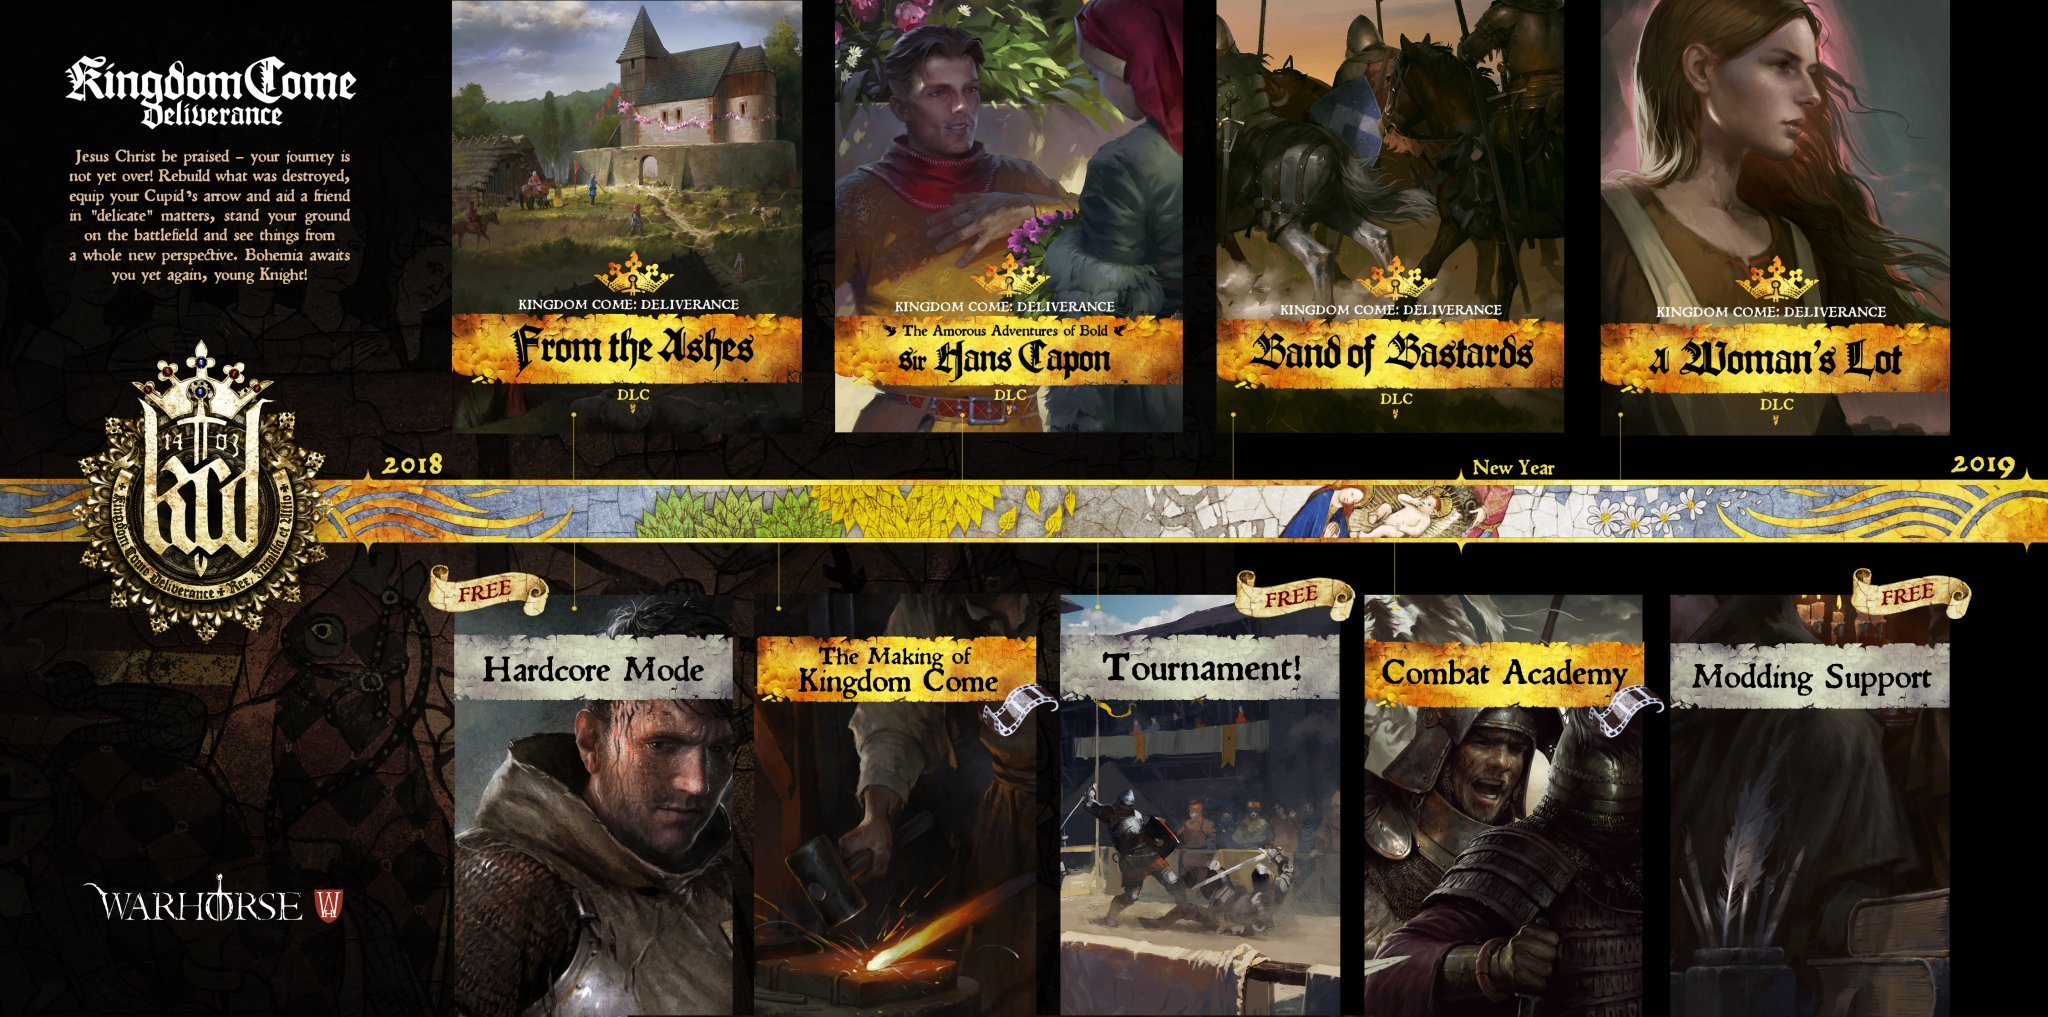 Kingdom Come Deliverance roadmap